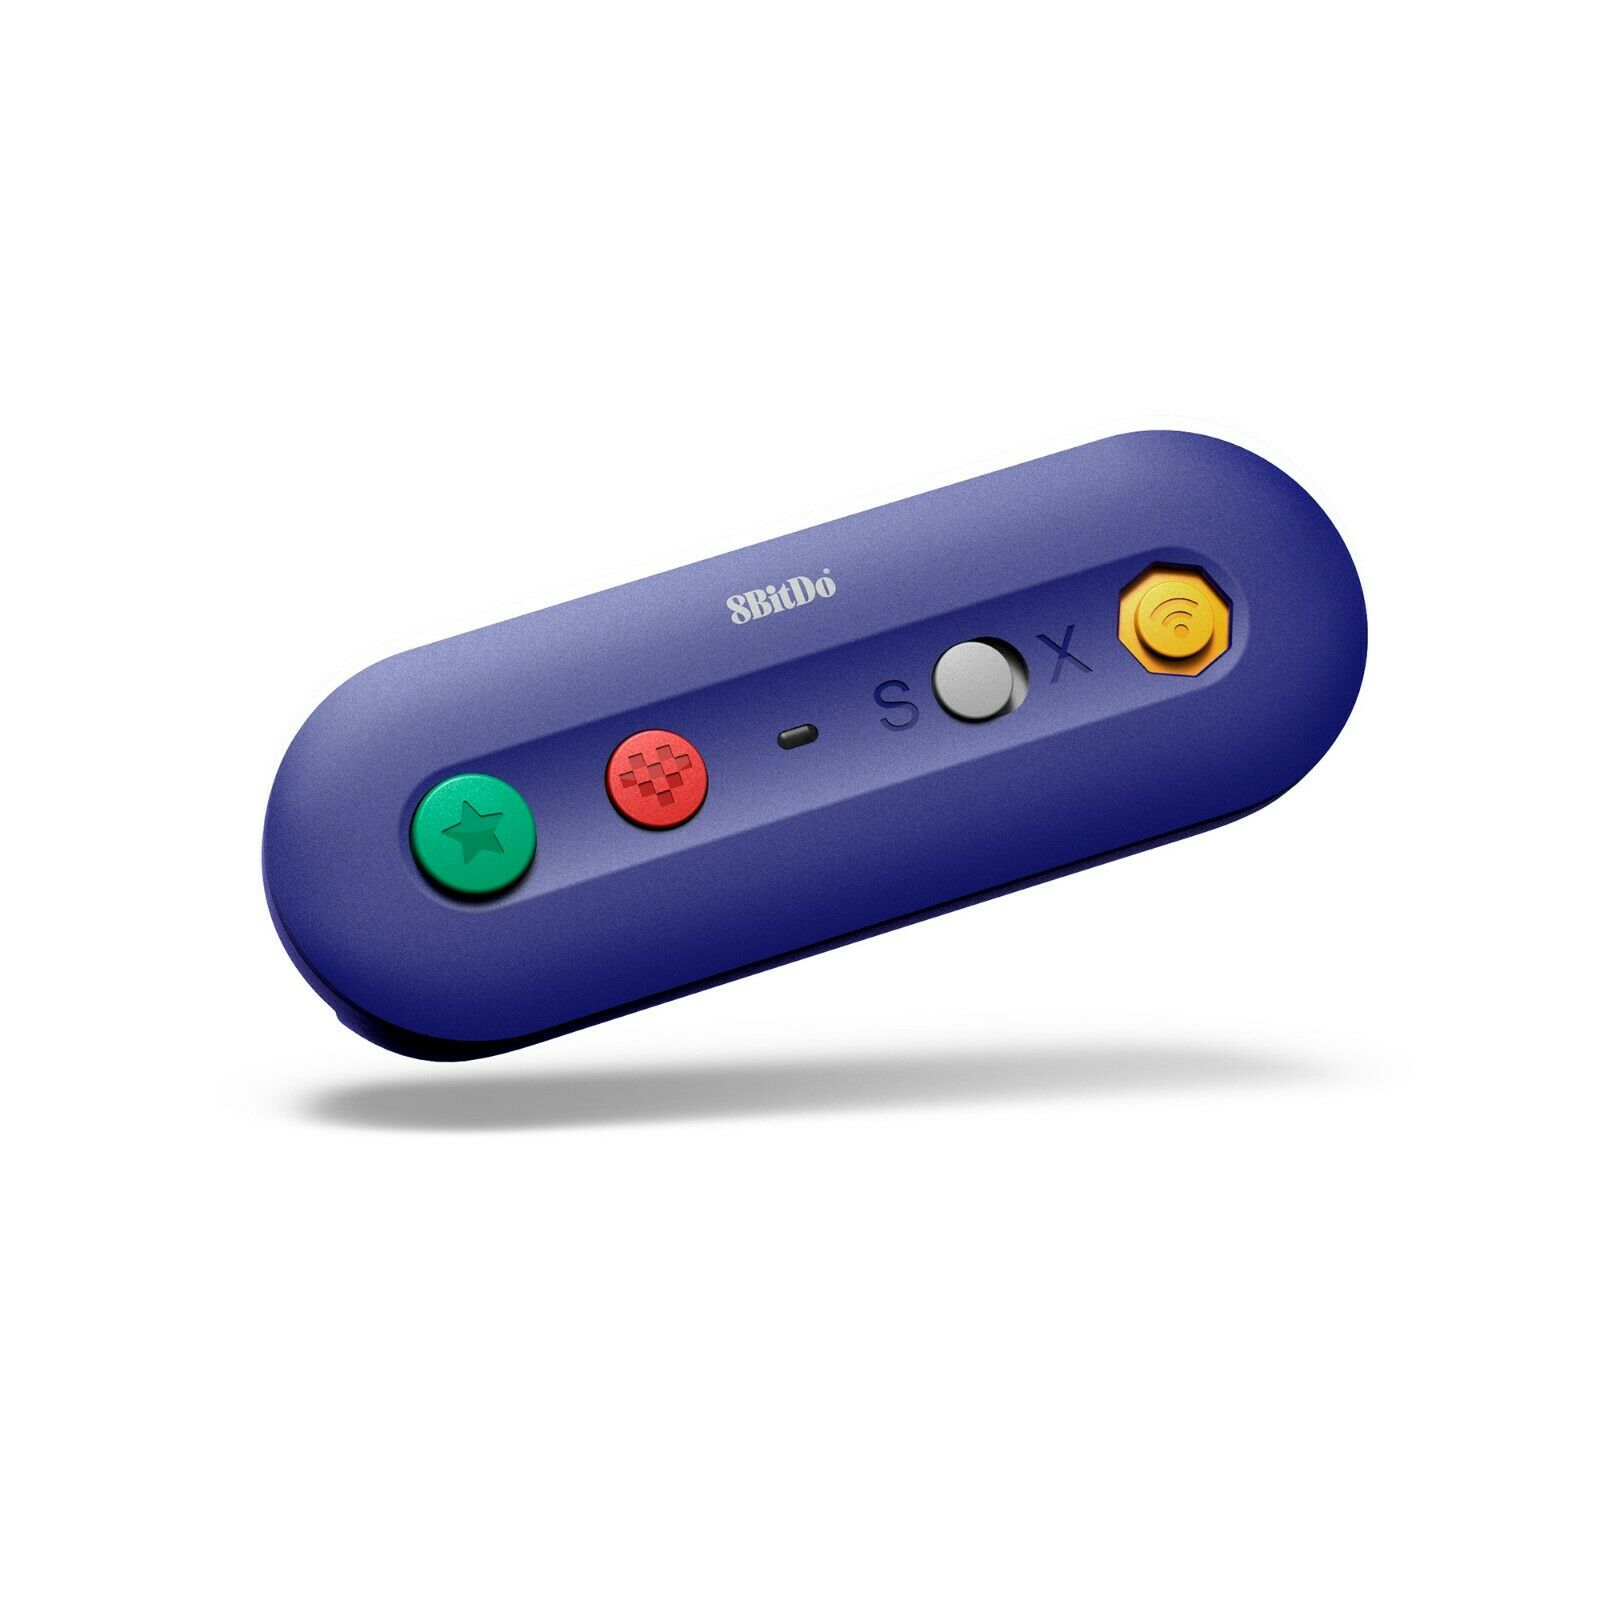 8Bitdo Gbros. Wireless Adapter for Switch (Wired GameCube & Classic Co Controllers & Attachments